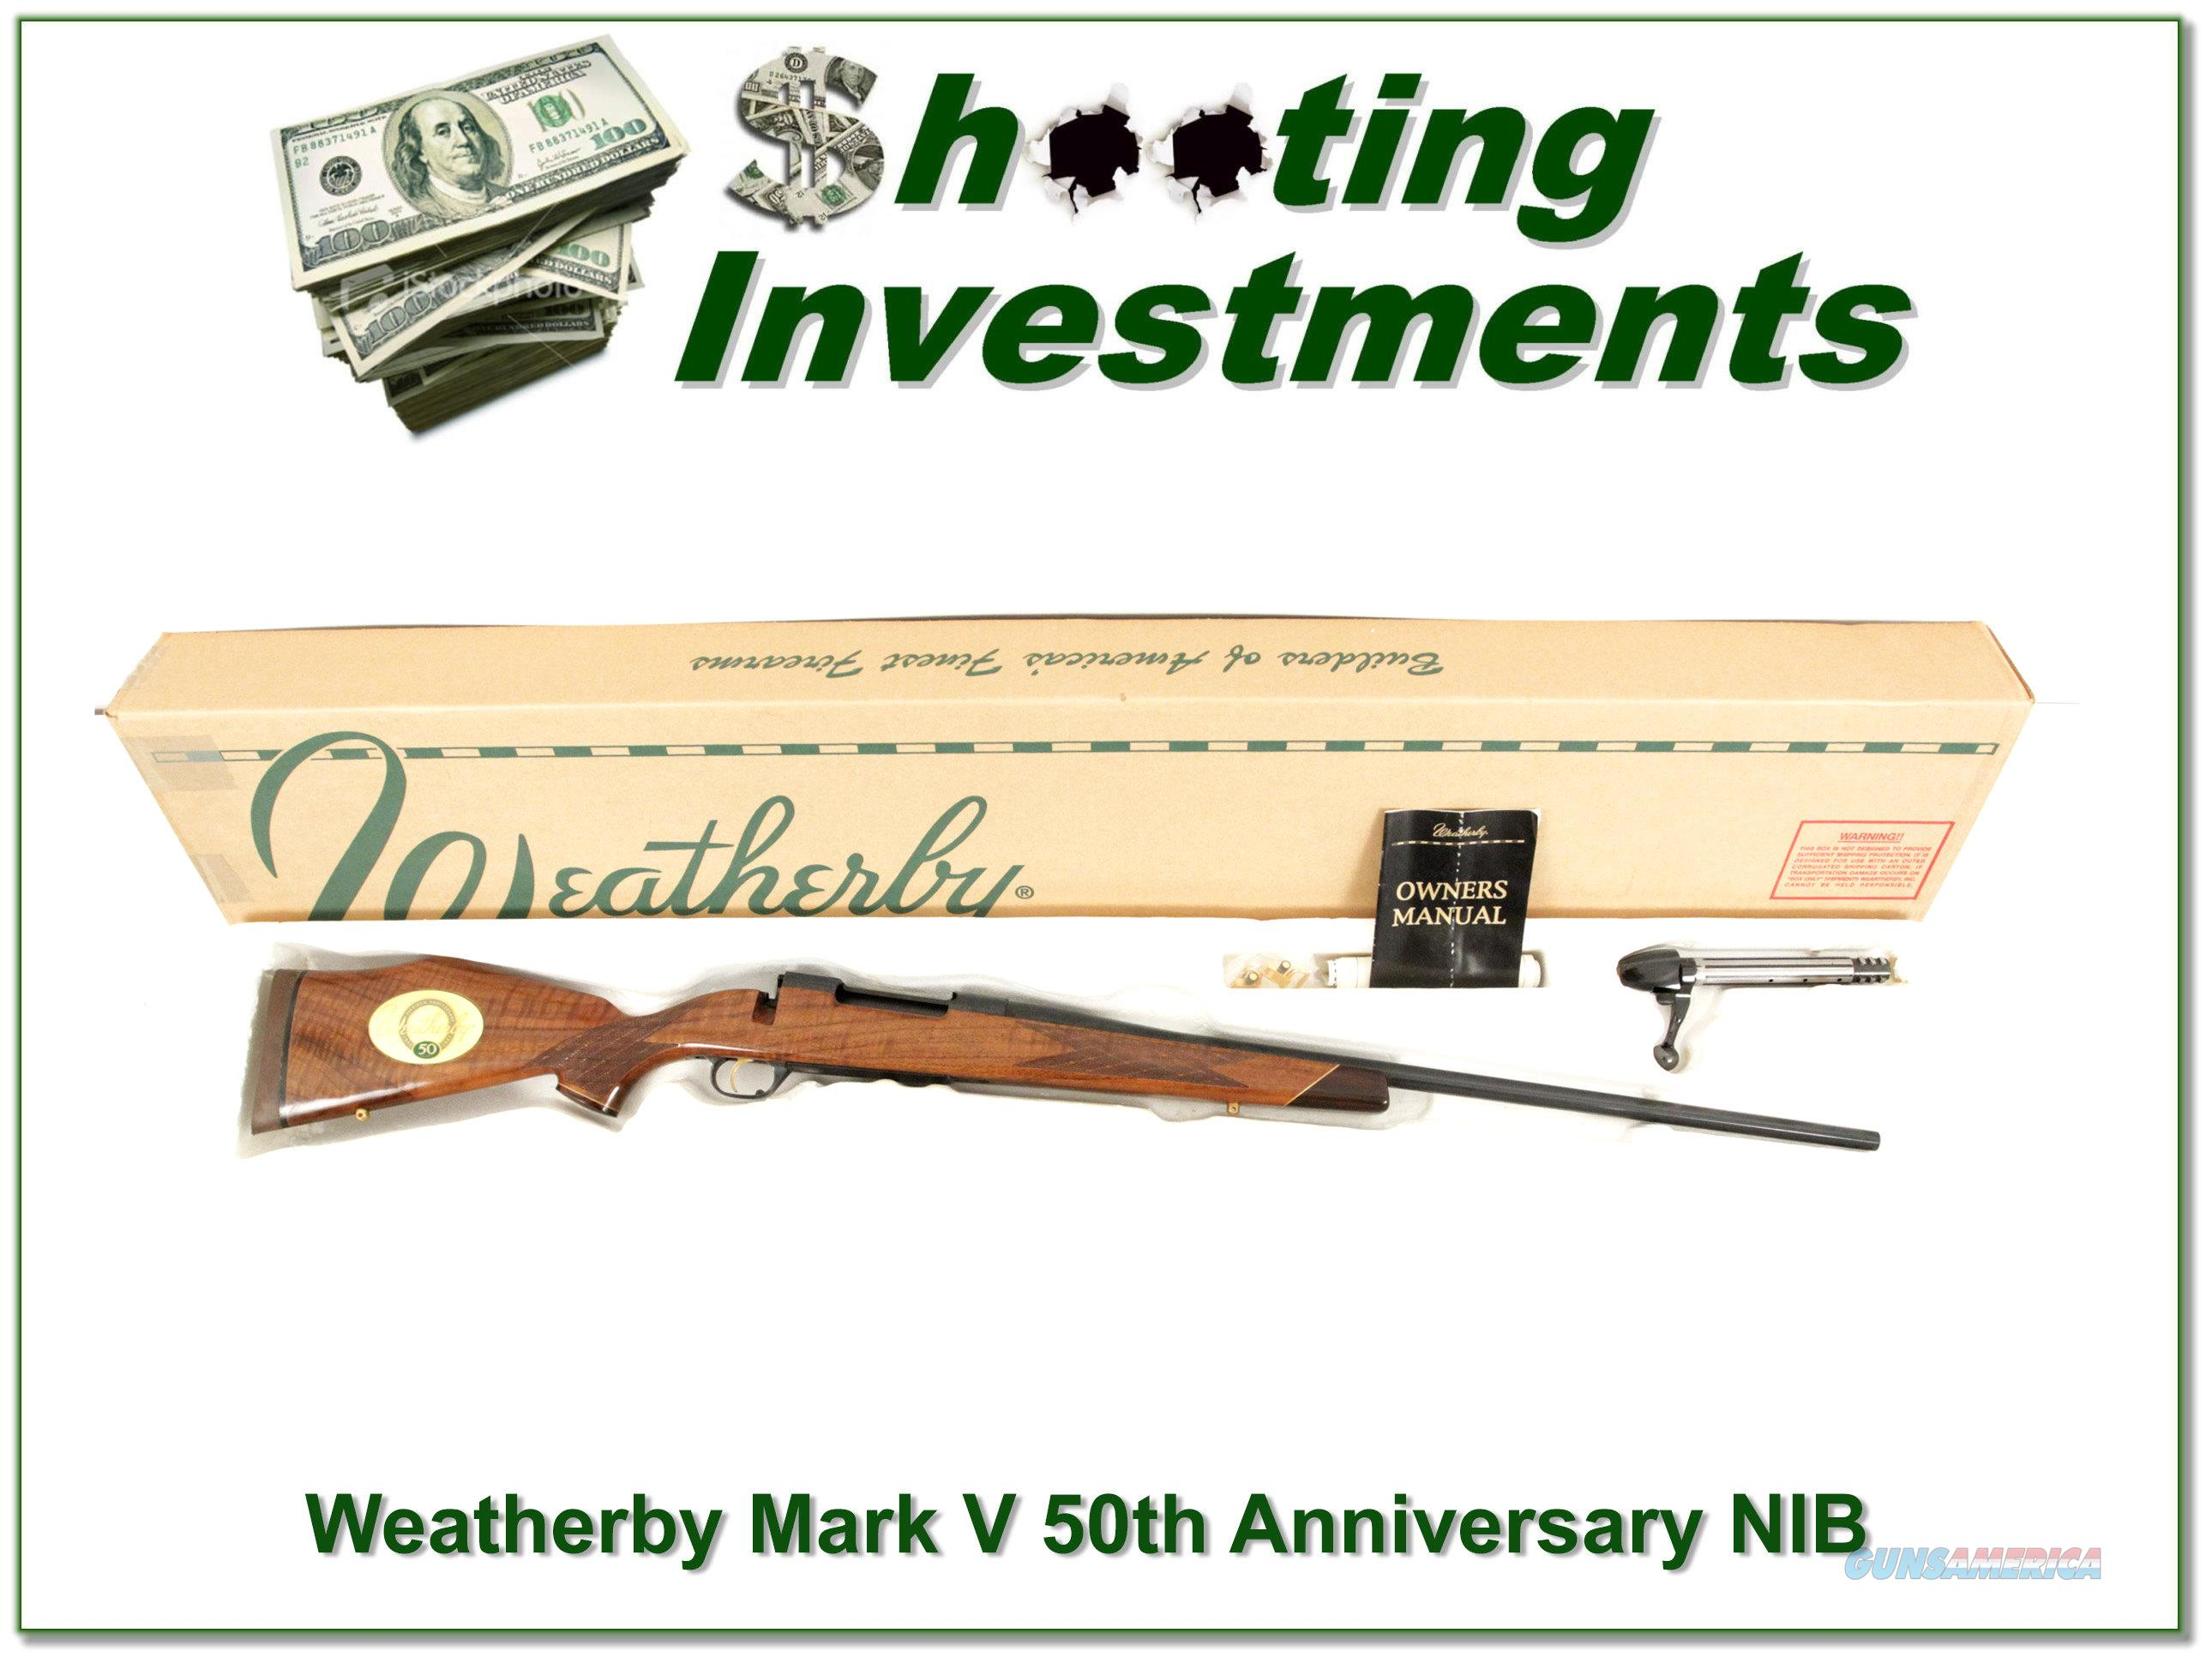 Weatherby Mark V 300 50th Anniversary 1995 NIB  Guns > Rifles > Weatherby Rifles > Sporting